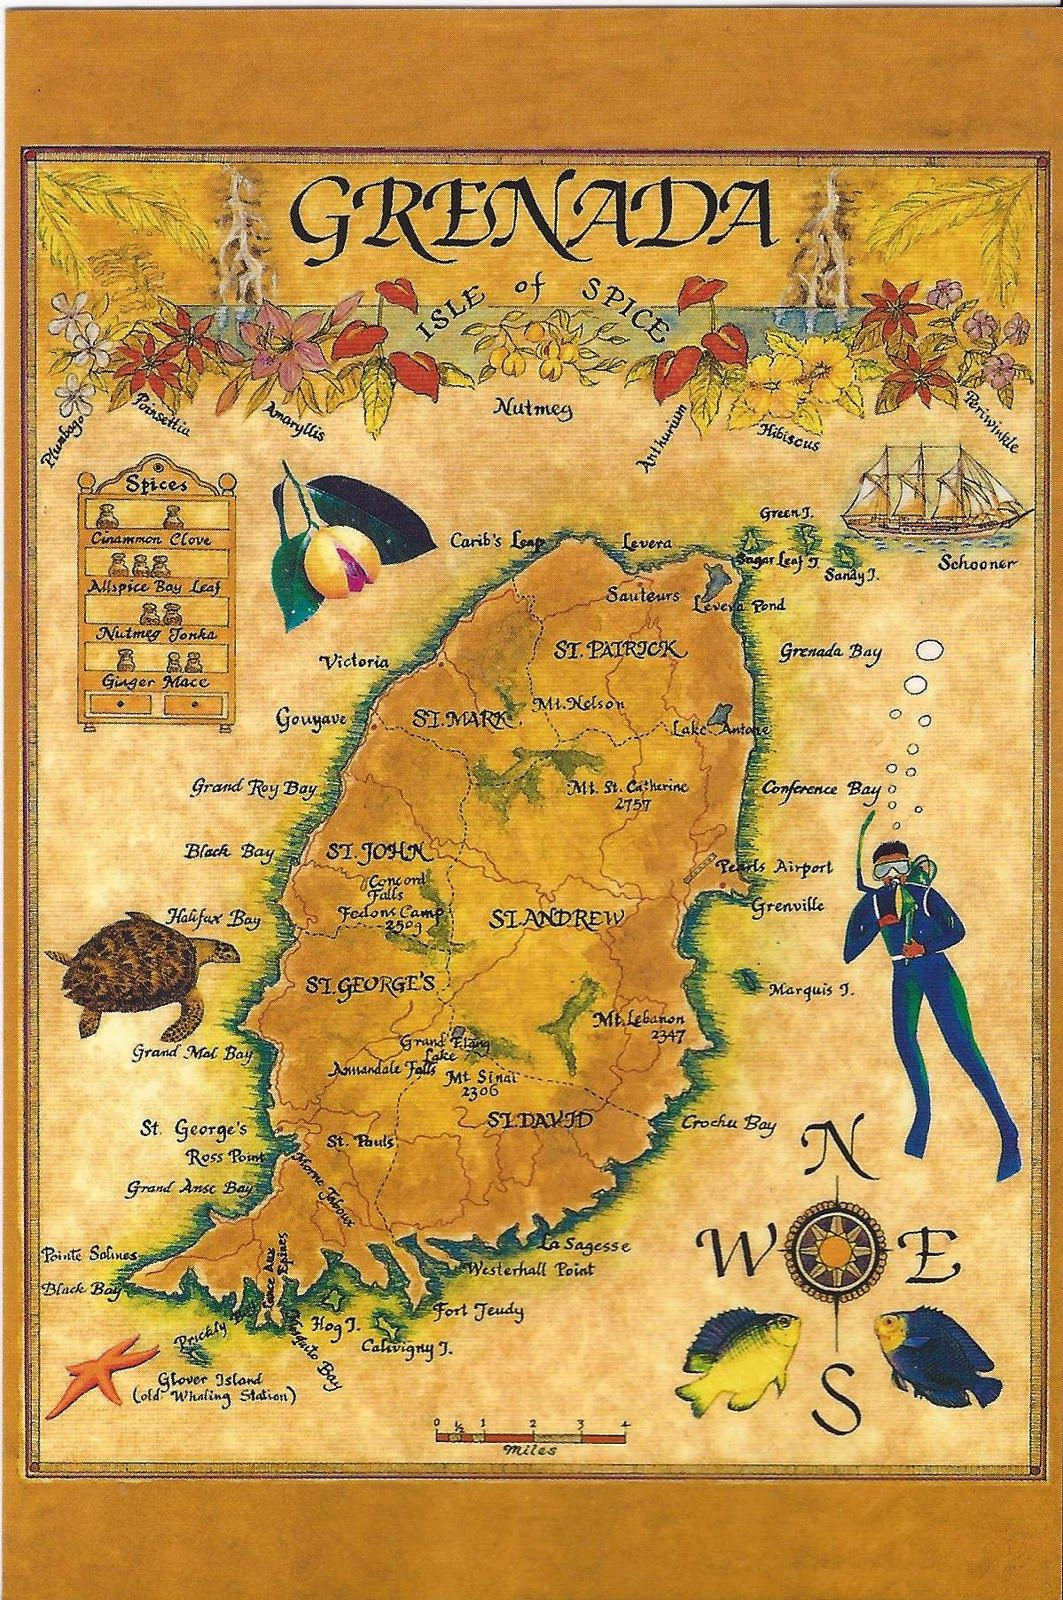 Grenada illustrated map Island hopping in the Caribbean Day 14 of